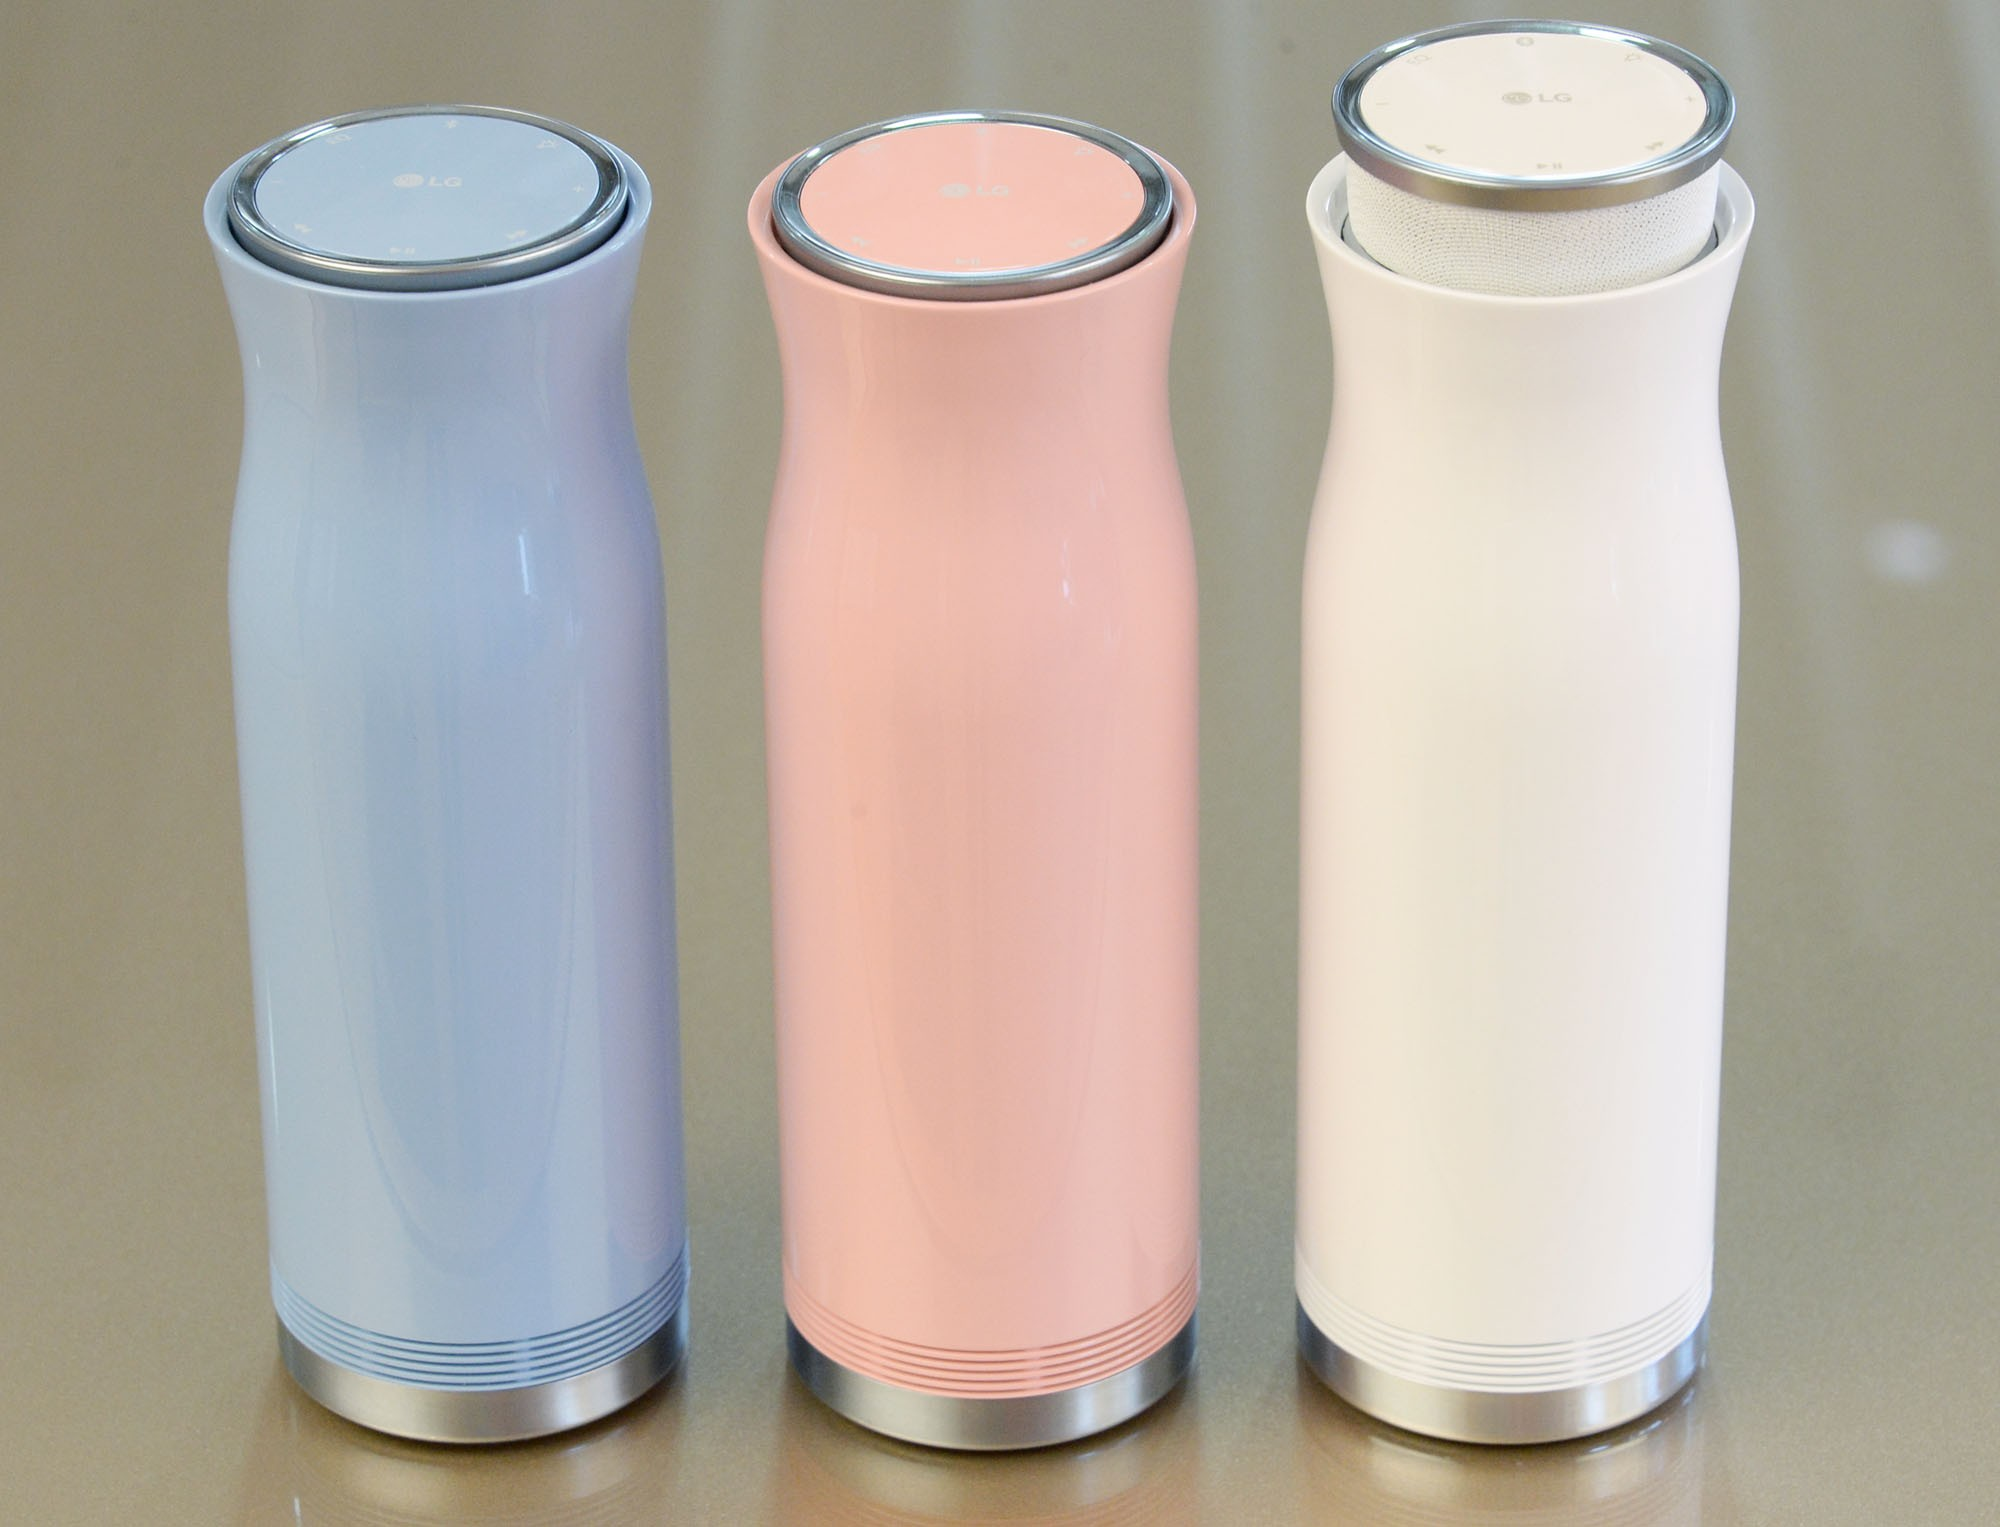 Three side-by-side LG SoundPop 360 models in pink, white and light blue